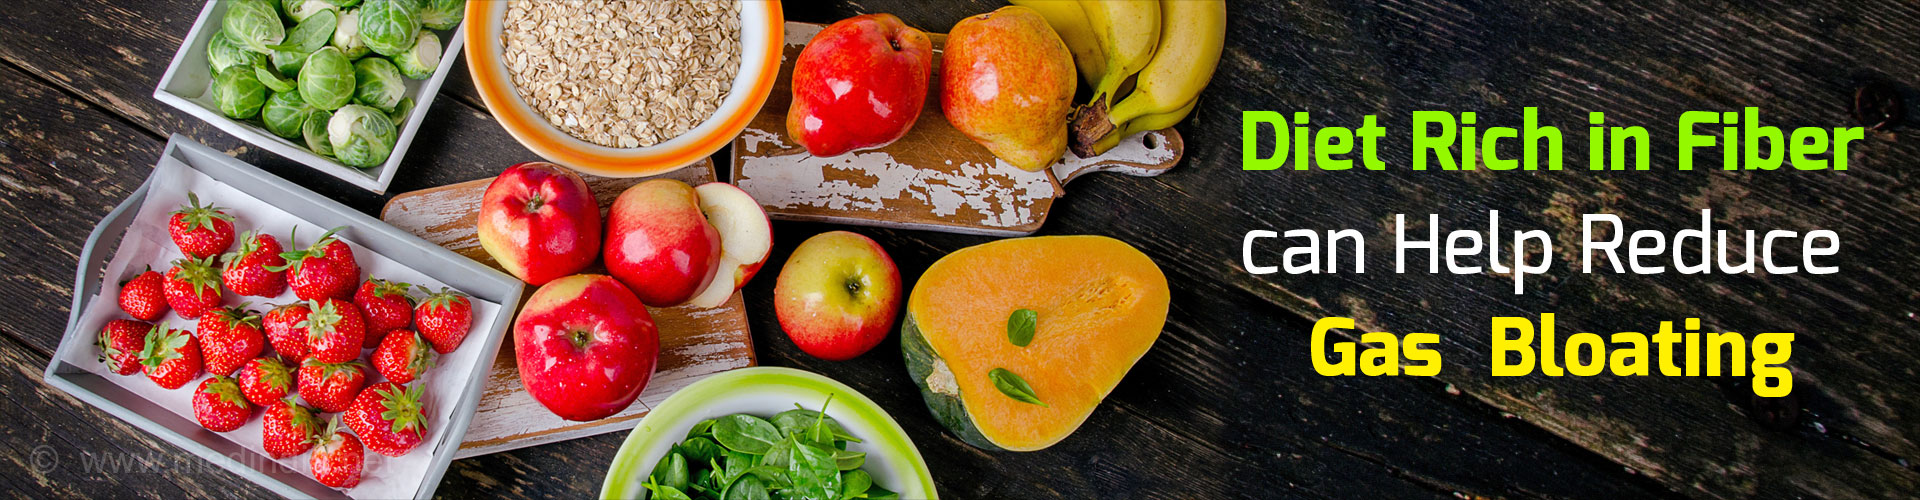 Diet Rich in Fiber can Help Reduce Gas Bloating